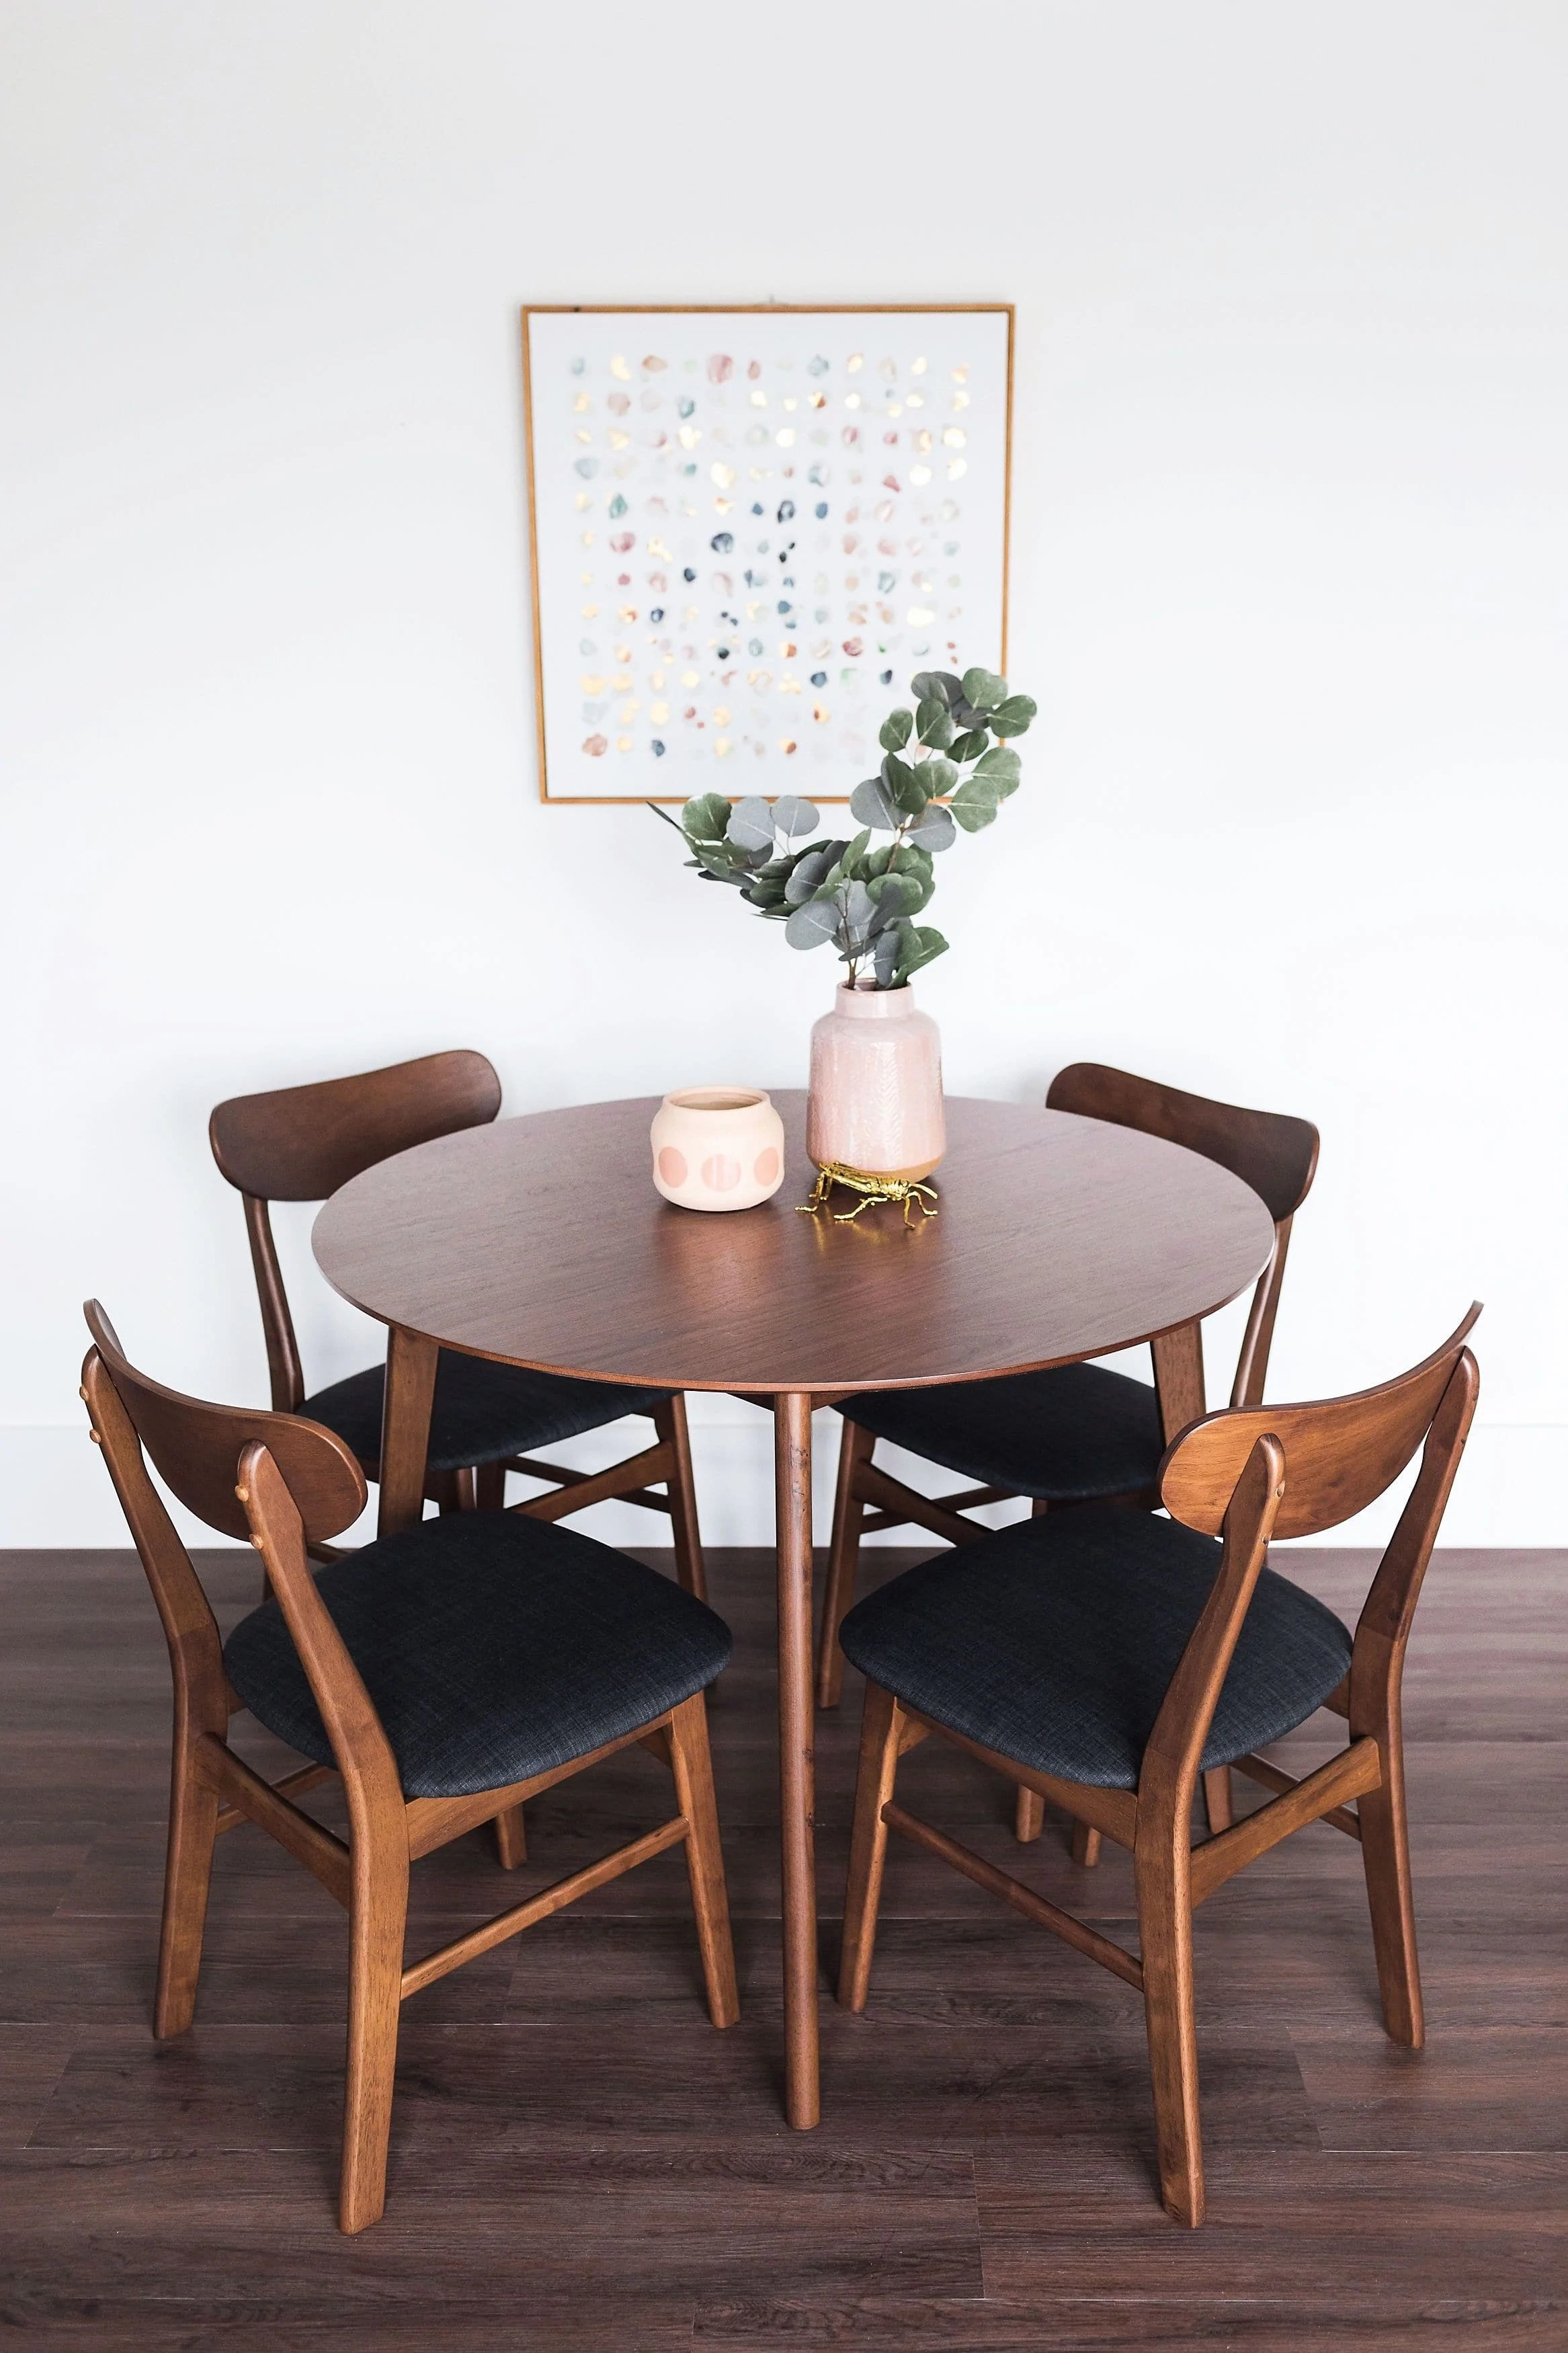 Alia Mid Century Modern Round Dining Table Small Kitchen Table Walnut Edloe Finch Furniture Co